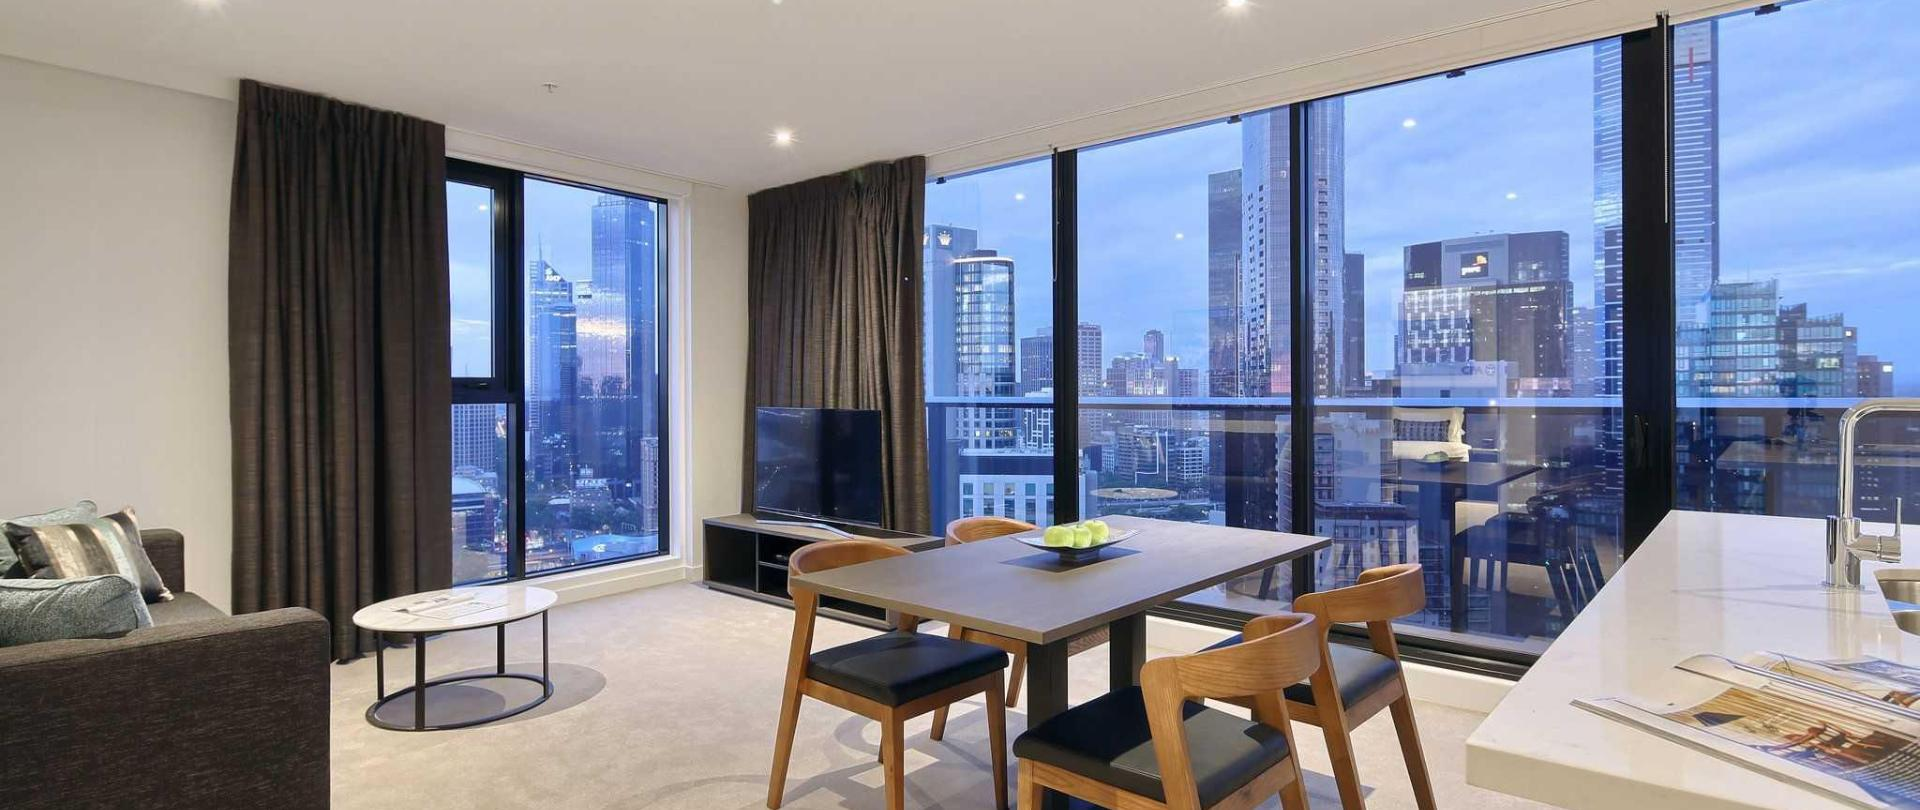 Cool Experience Bella Hotel Apartments Melbourne Australia Best Image Libraries Barepthycampuscom